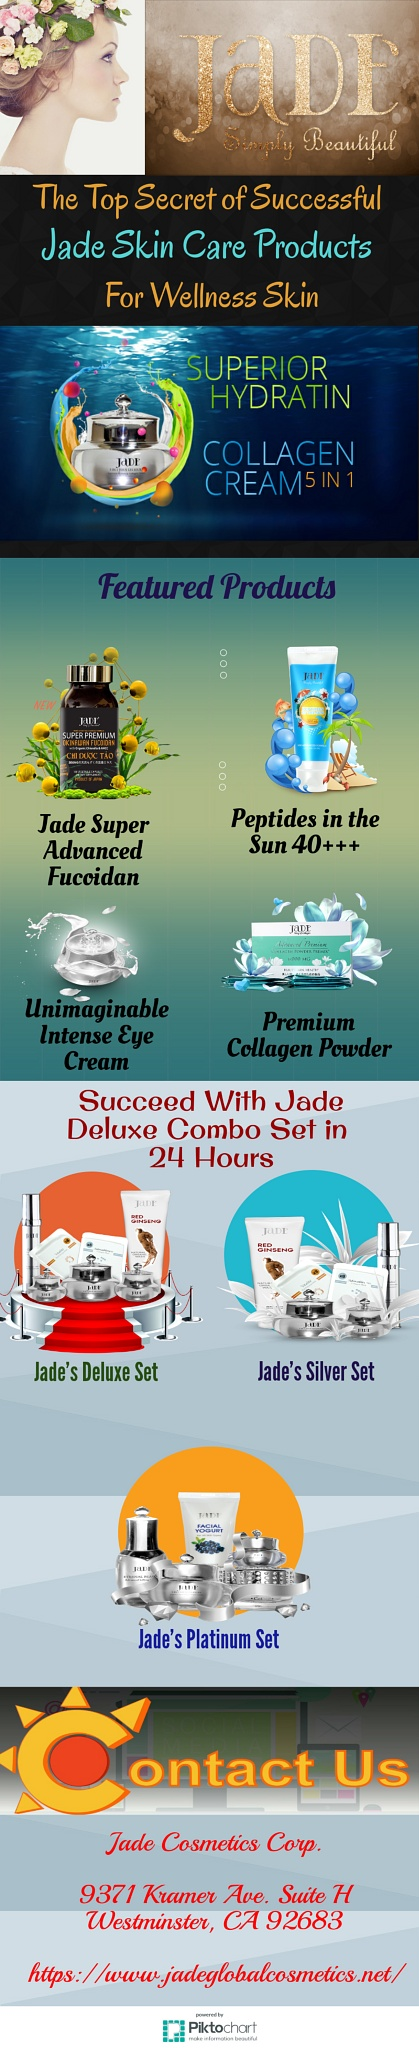 Jade's Natural Beauty Cosmetic Products by jadeglobalcosmetics